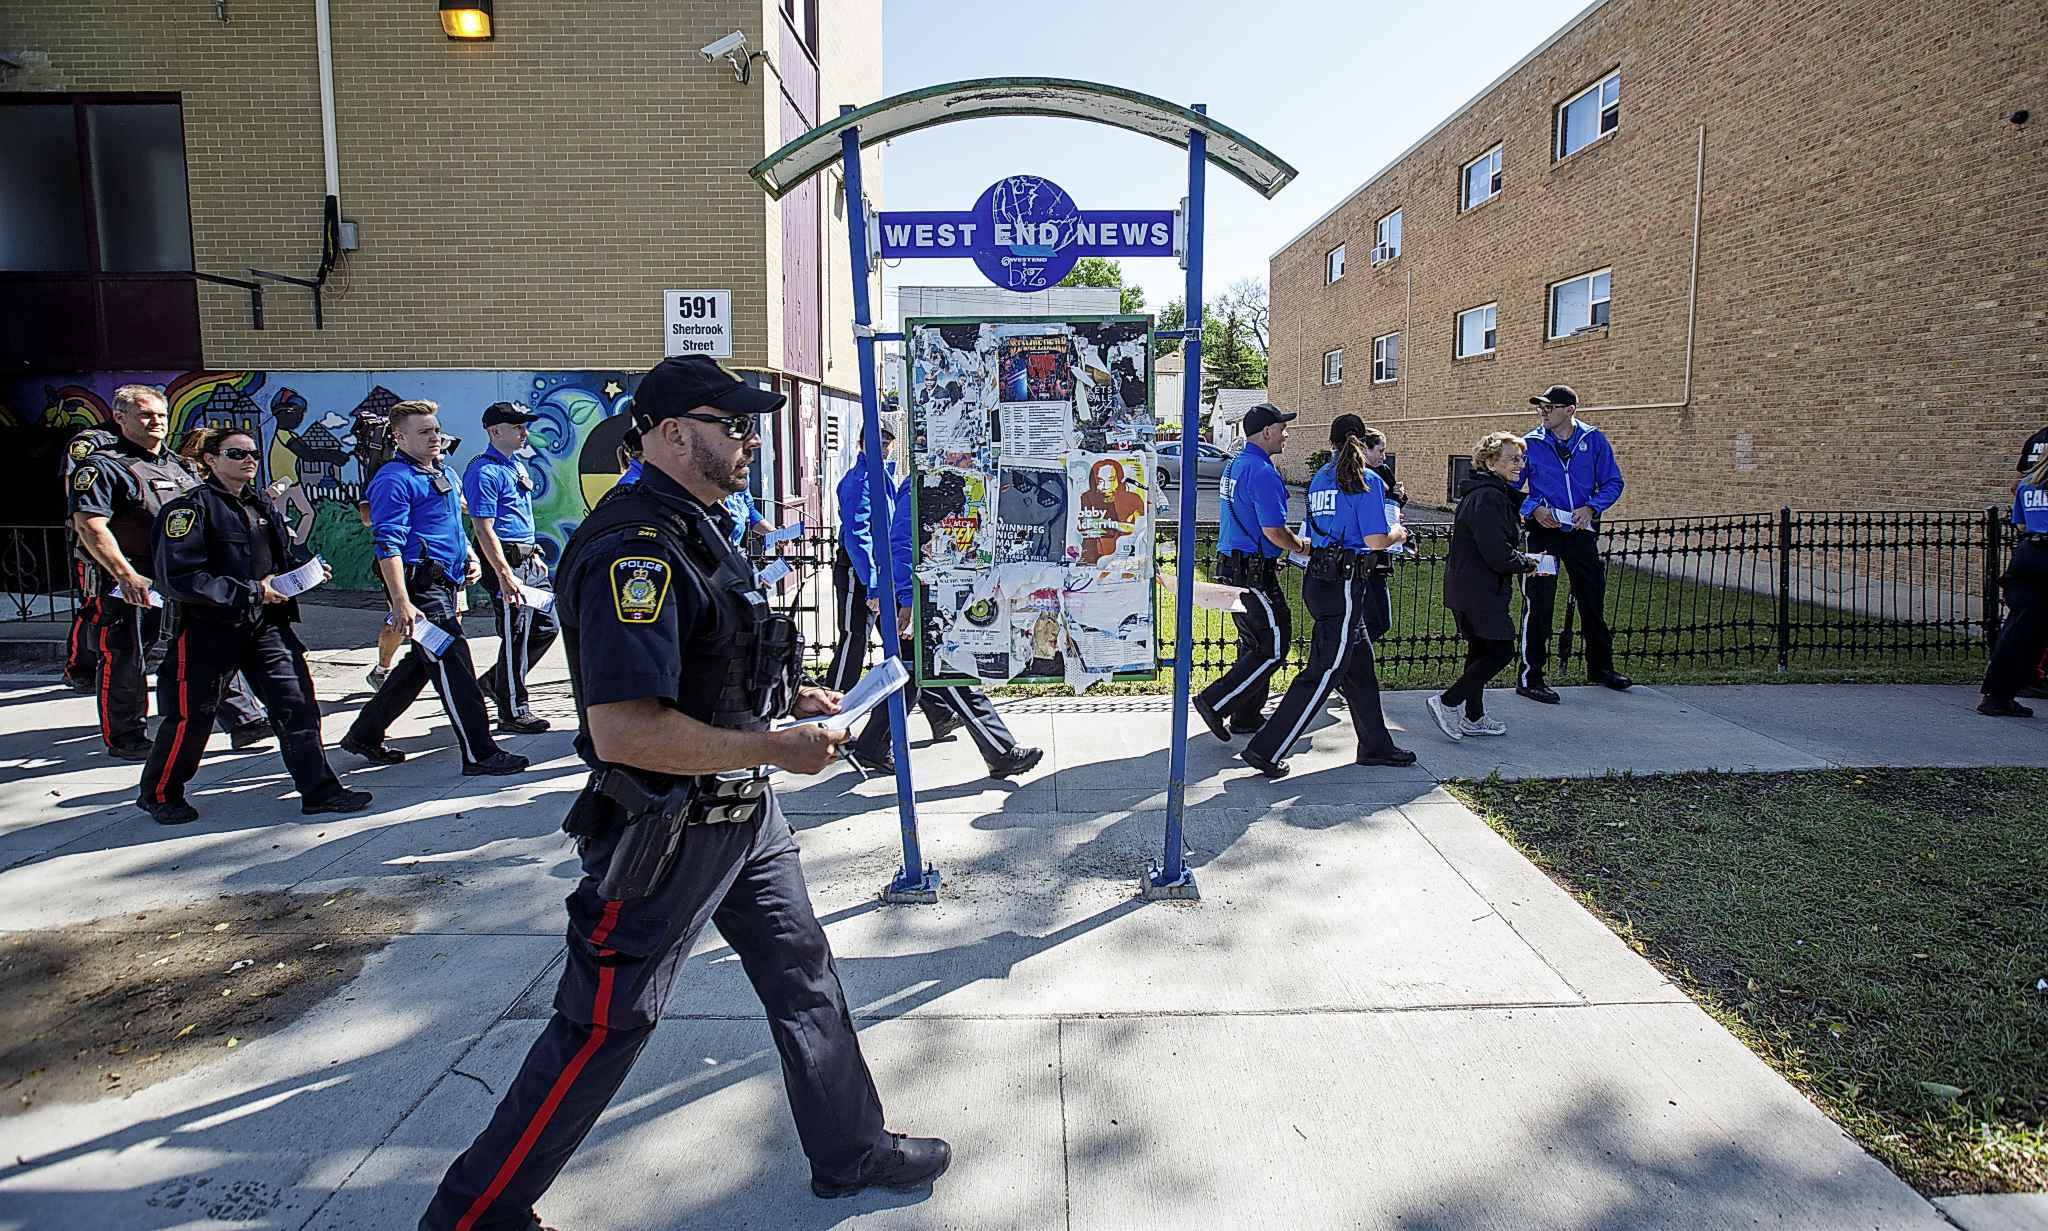 Winnipeg Police Service officers and cadets going door-to-door talking to residents along Sherbrook Street about how community members can help in crime prevention and reminding people of the various ways they can connect with the WPS. (MIke Deal / Winnipeg Free Press files)